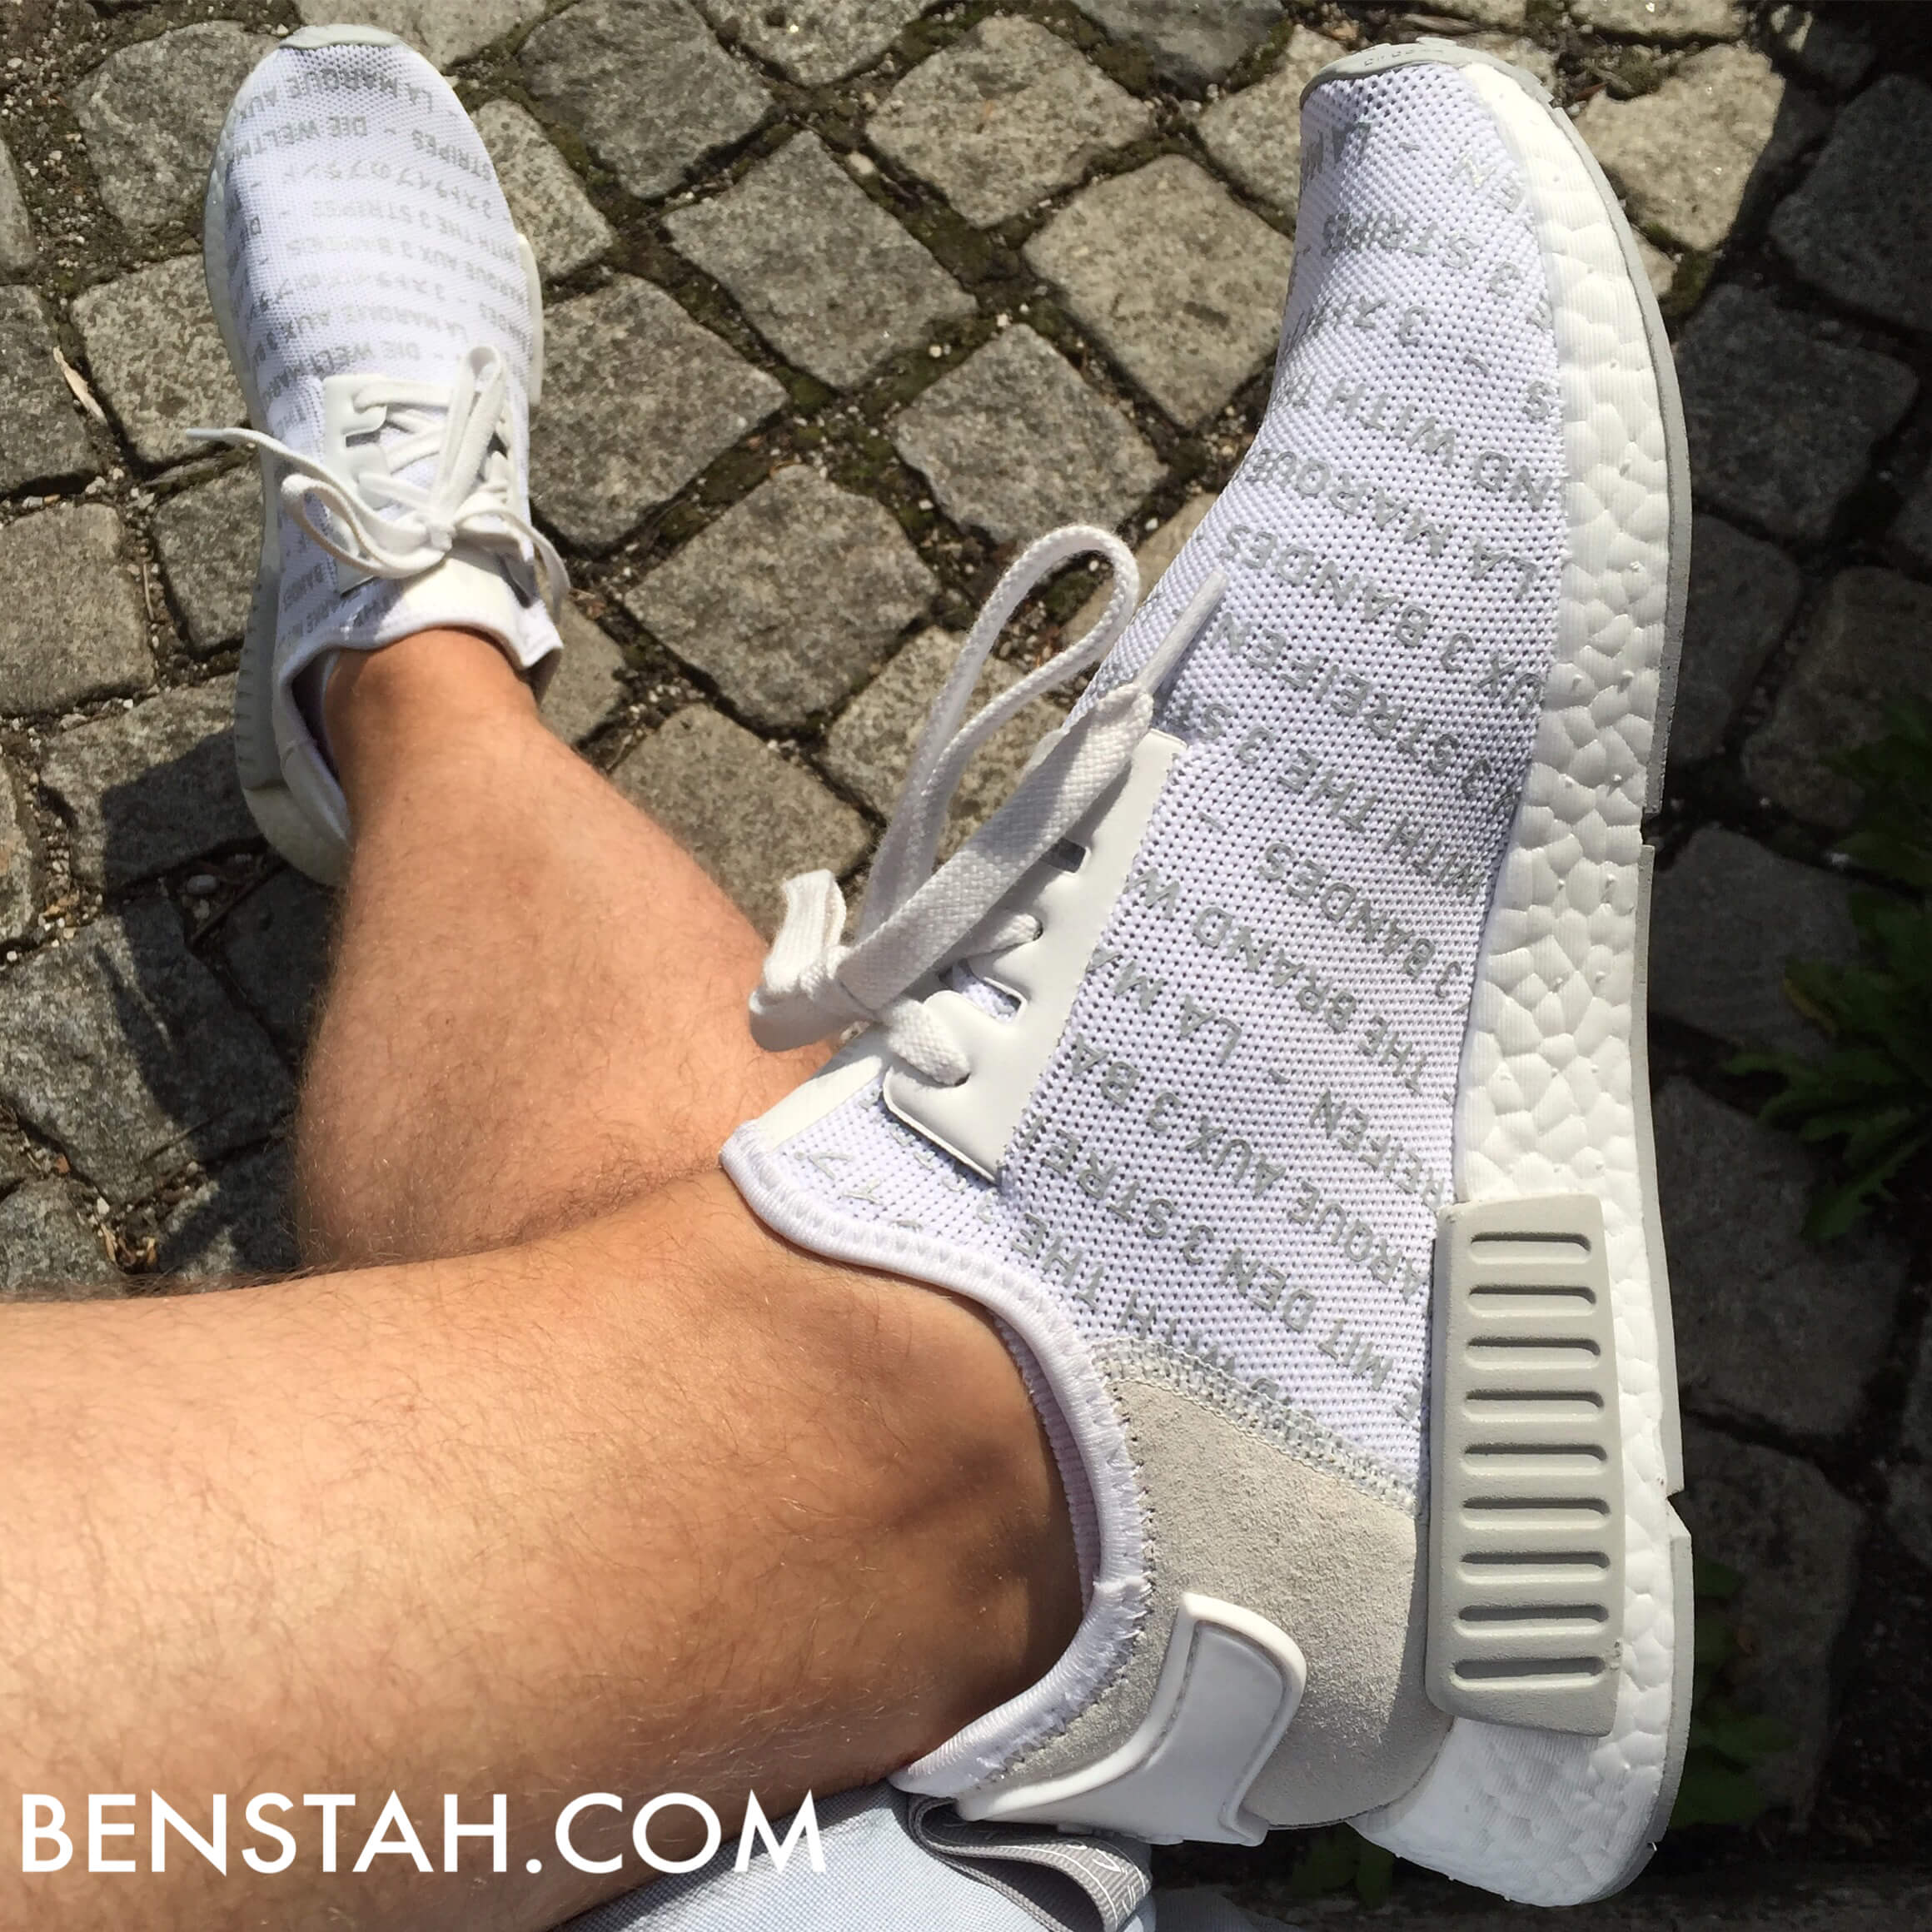 adidas-nmd-r1-whiteout-top-view-benstah-onfeet